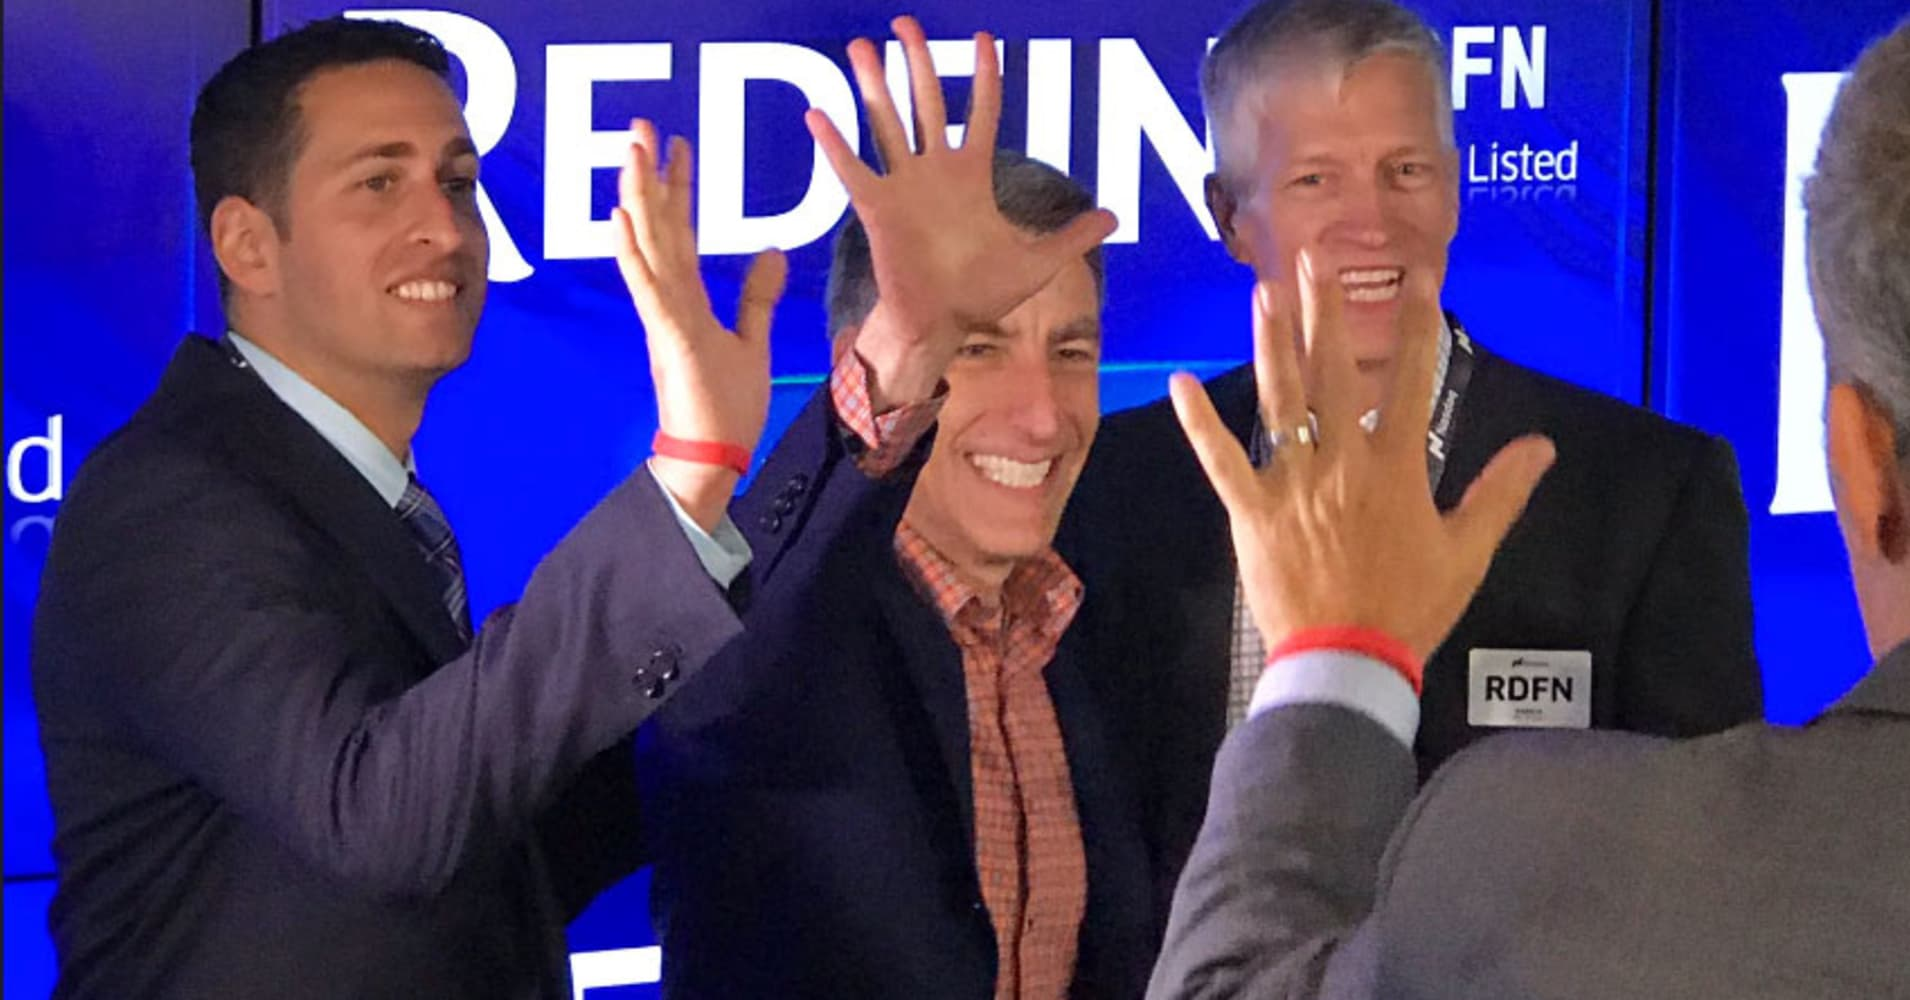 Redfin IPO: RDFN stock opening trade